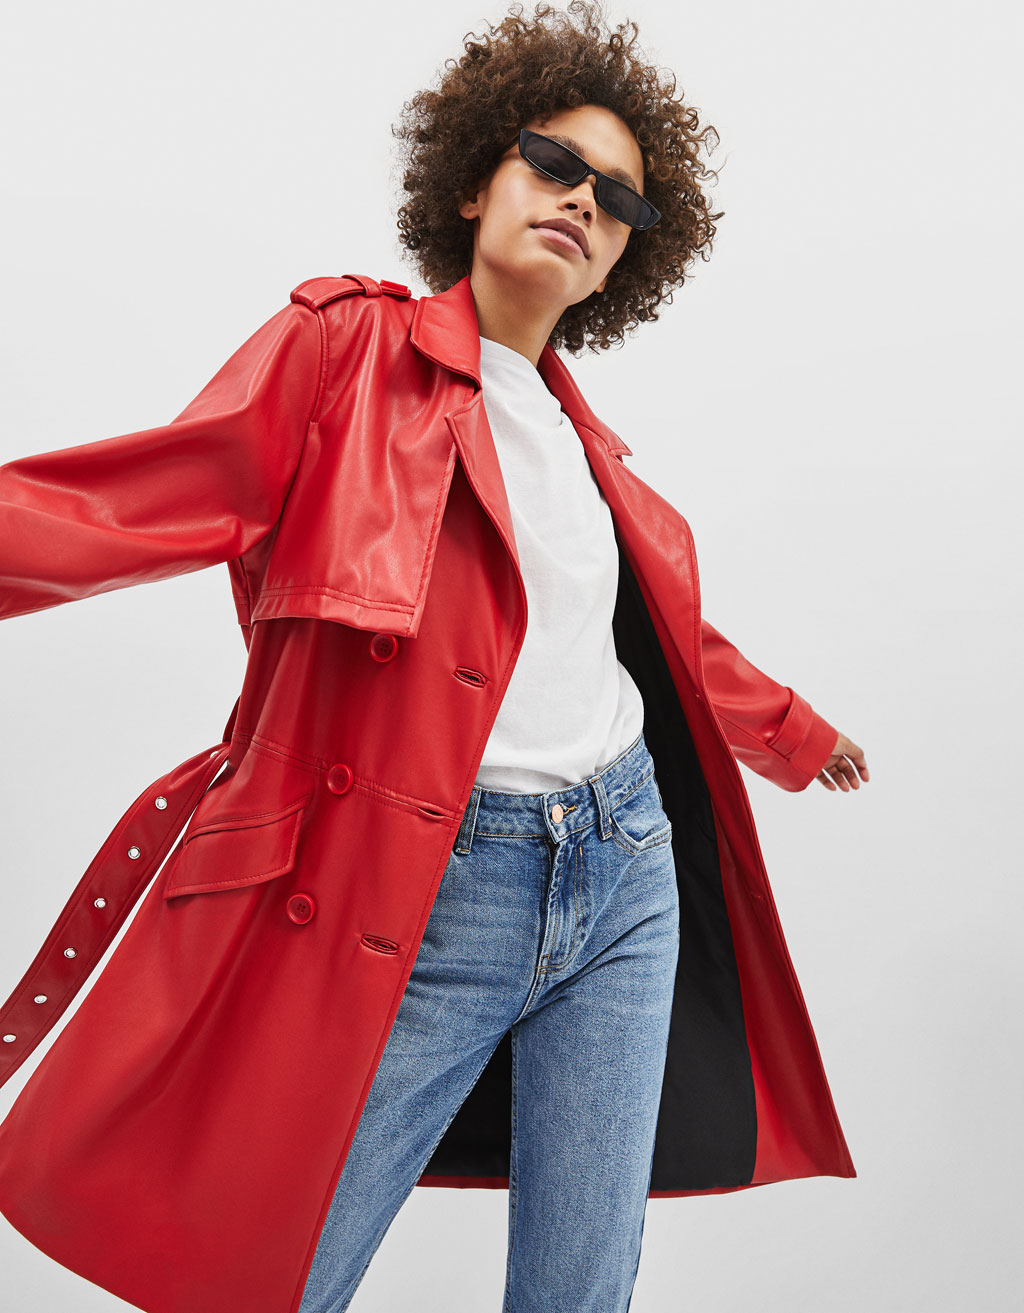 878ec69ef8c Coats - COLLECTION - WOMEN - Bershka United States